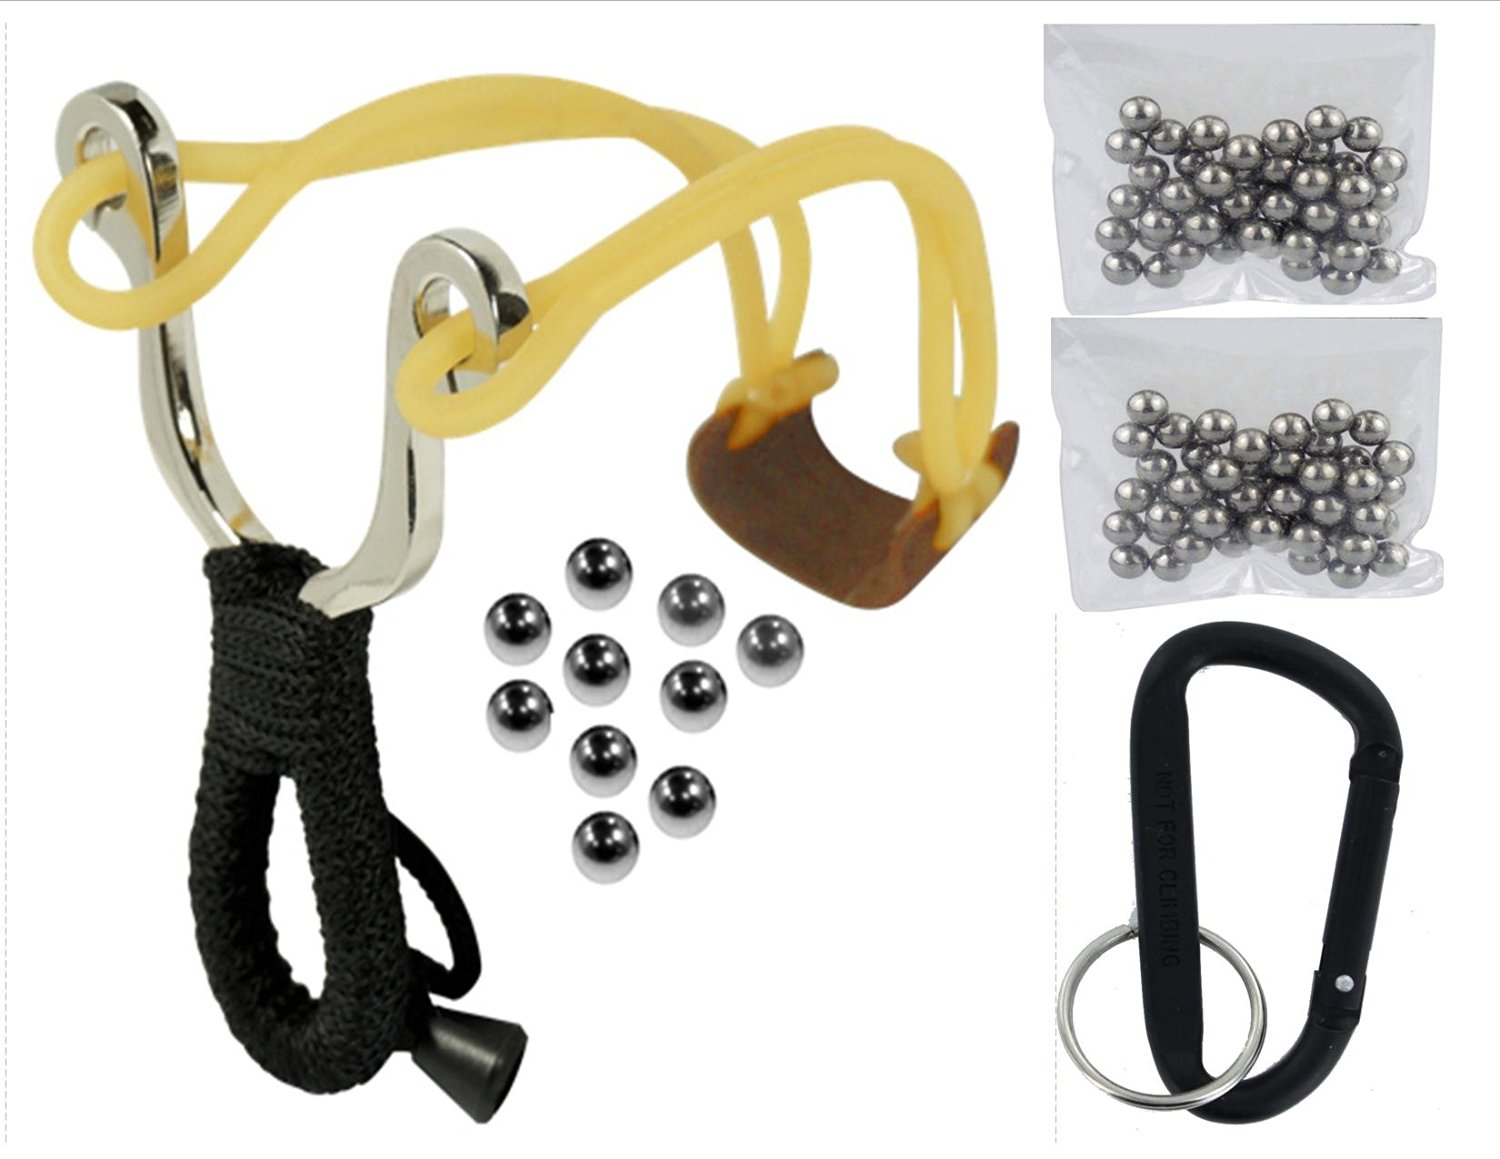 VAS EMERGENCY SURVIVAL COMPACT SLING SHOT & 10 PK 6MM / 100 PK 8MM AMMO WITH CARABINER